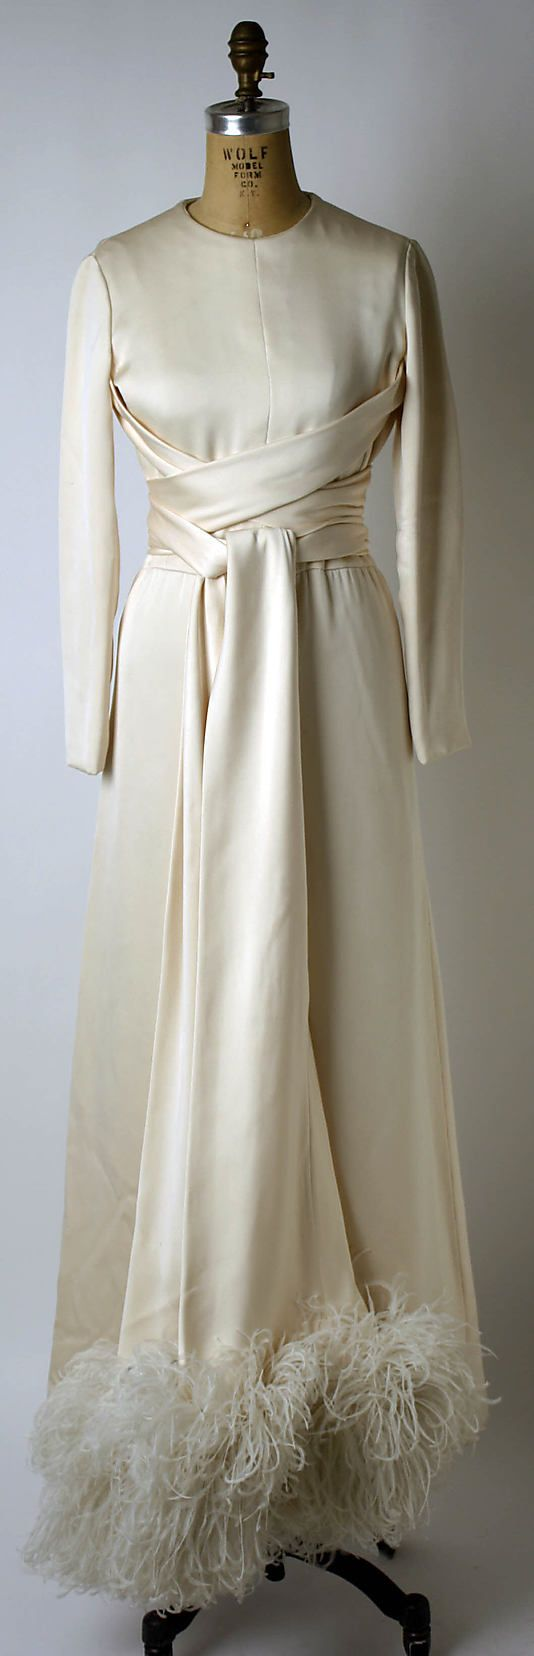 Valentino Dress - late 1960's - by Valentino (Italian, born 1932) - Silk, feathers - Credit line: Bequest of Barbara C. Paley, 1978